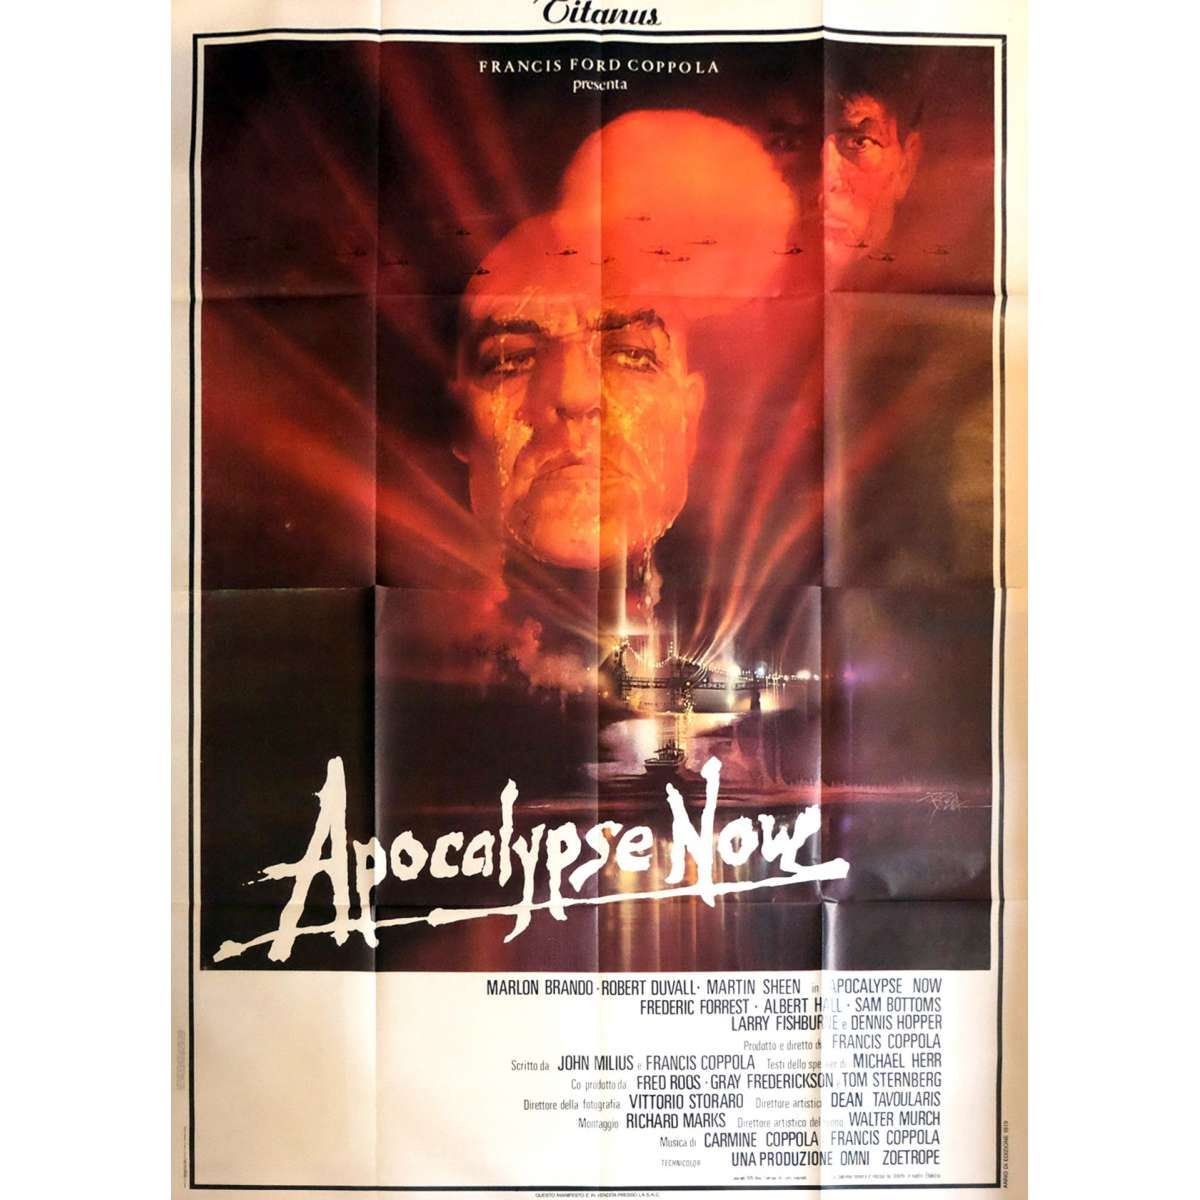 an analysis of the 1979 film apocalypse now Apocalypse now: the original 1979 reviews vincent canby in the new york times admitted when he first saw the movie that apocalypse now was a apocalypse will.